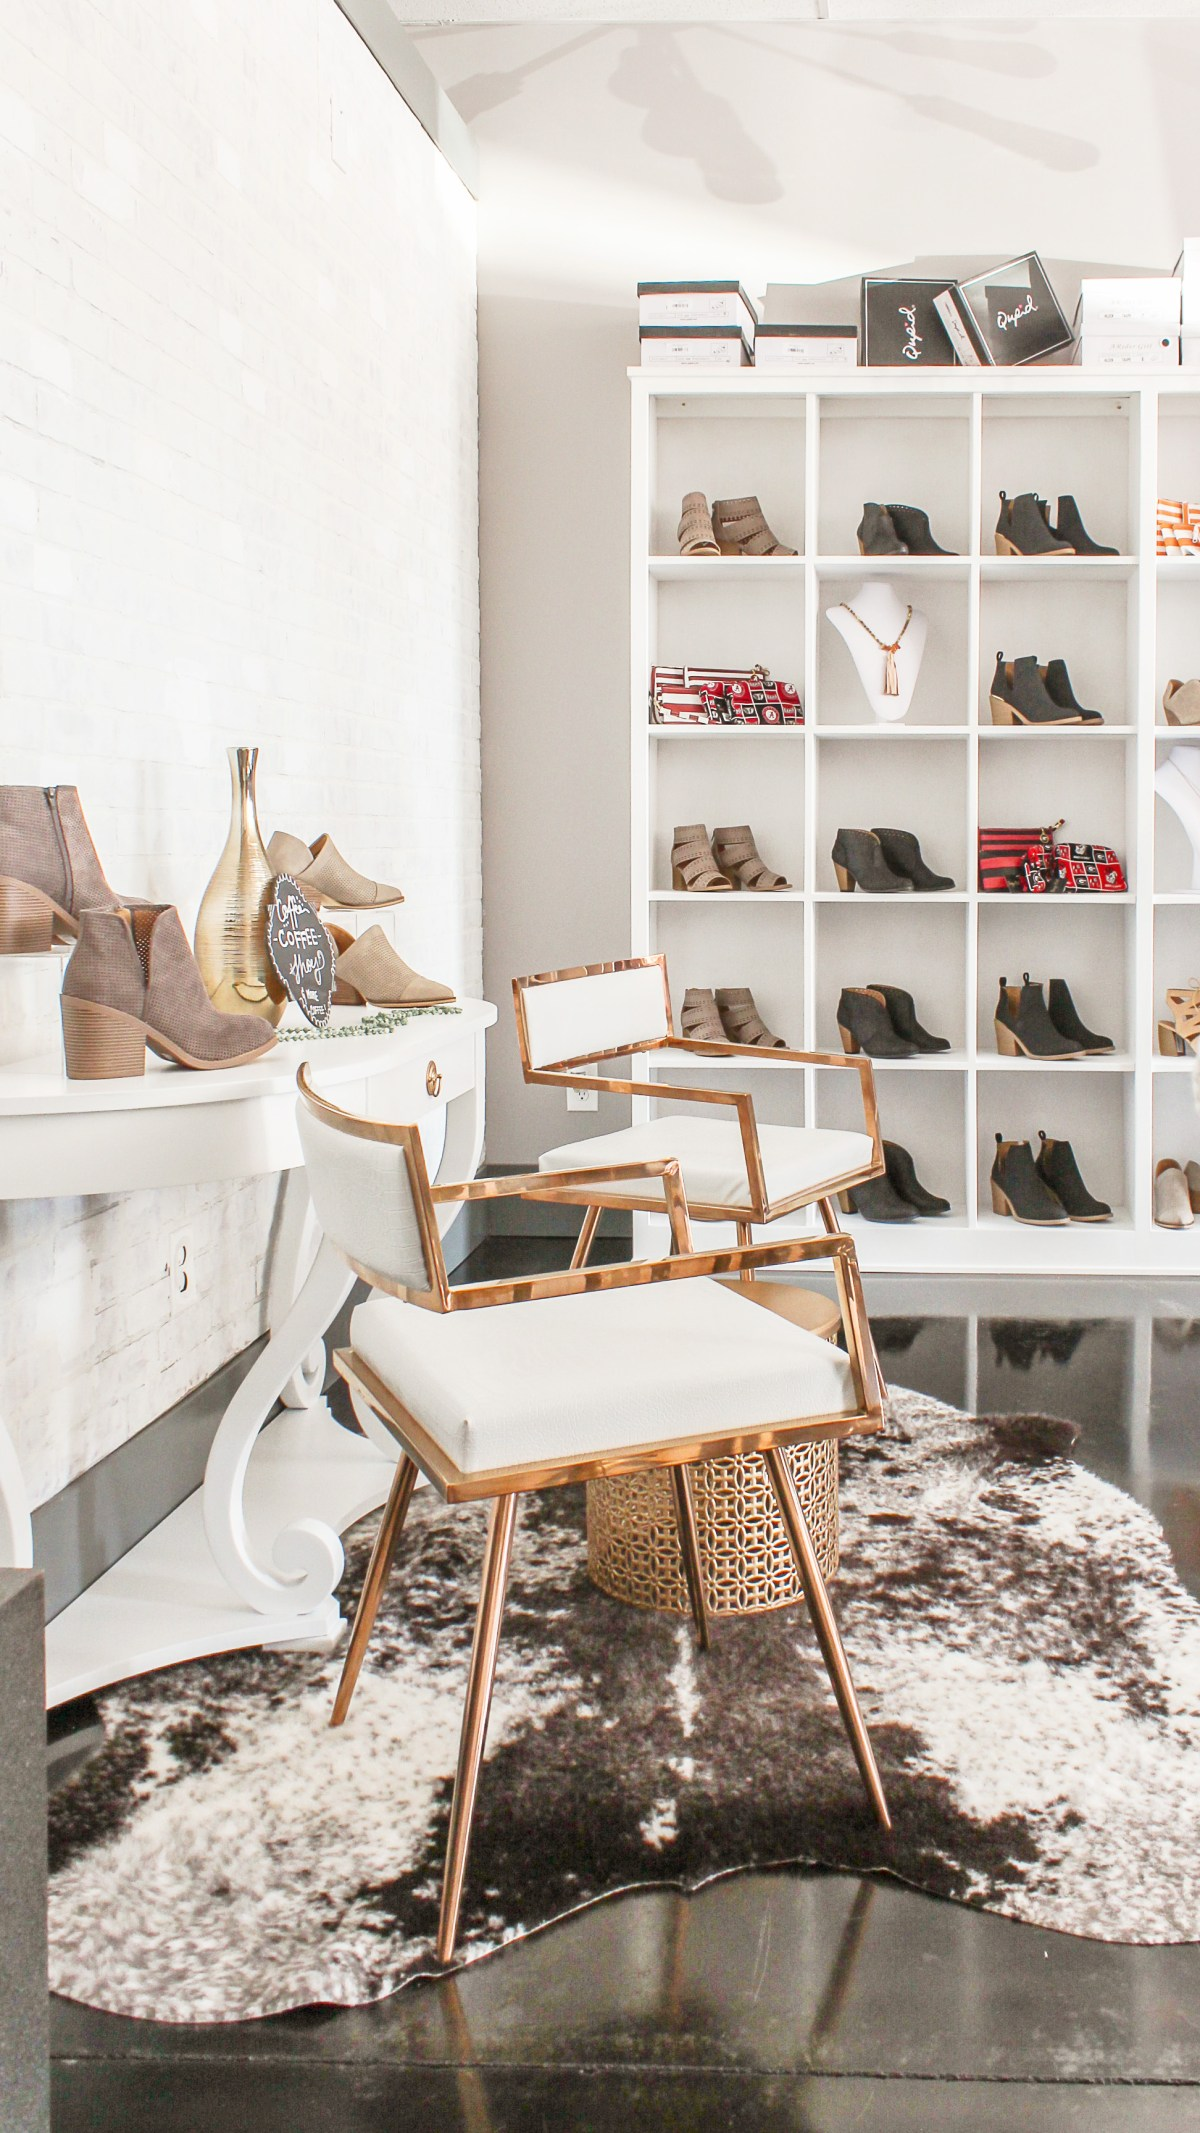 Clothing Boutique Decor Archives Designing Vibes Interior Design Diy And Lifestyle